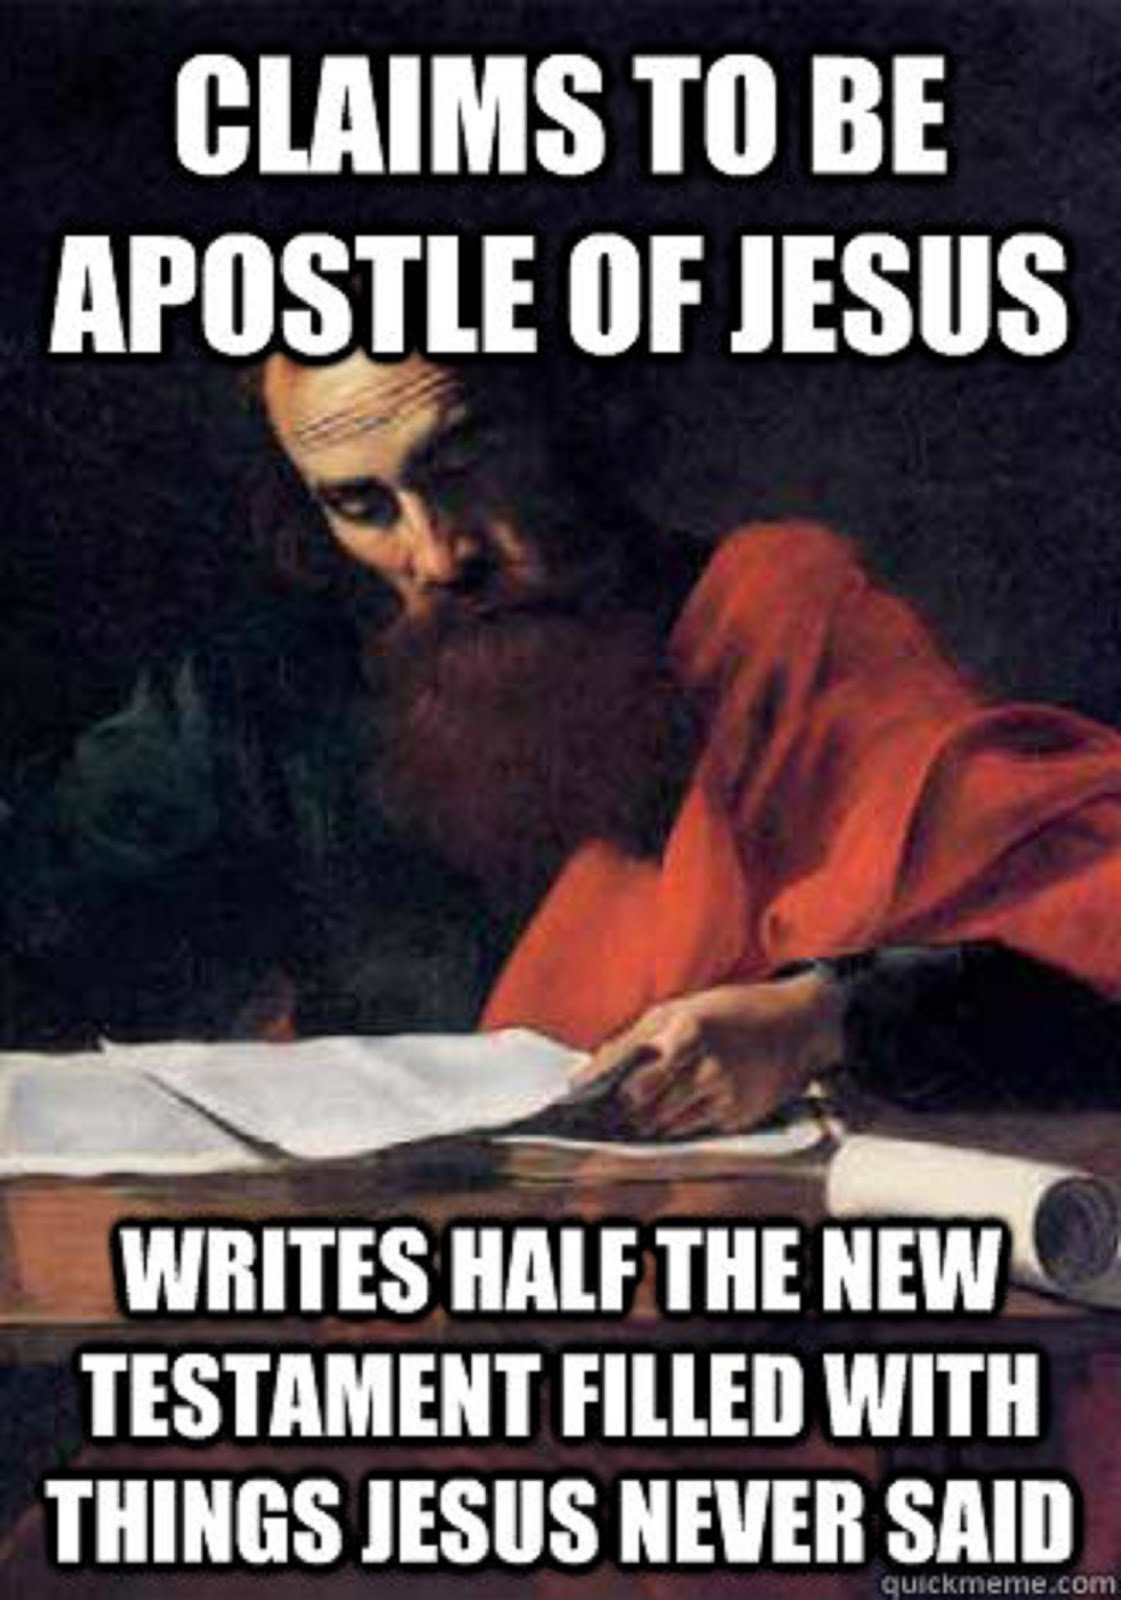 THE FALSE APOSTLE PAUL